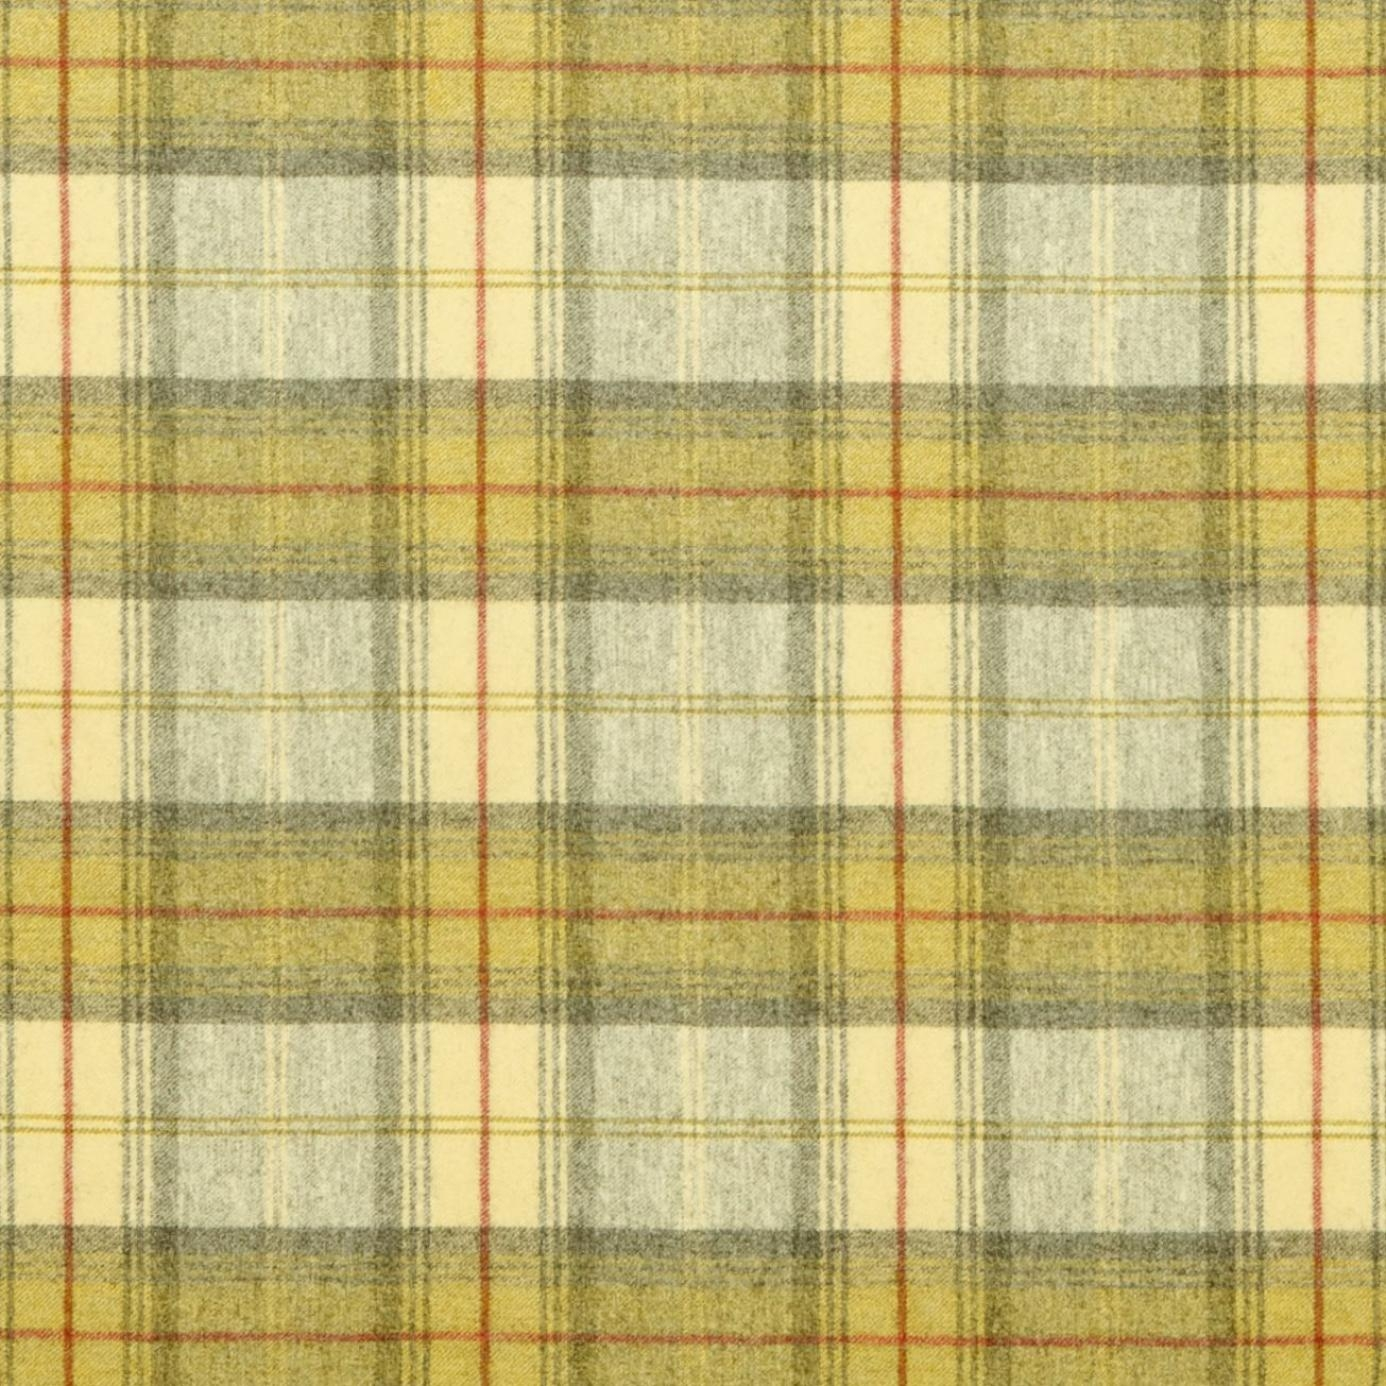 Roman Blinds In Woodford Plaid Fabric Ivorycatkin Dhigwp309 Regarding Plaid Roman Blinds (Image 9 of 15)